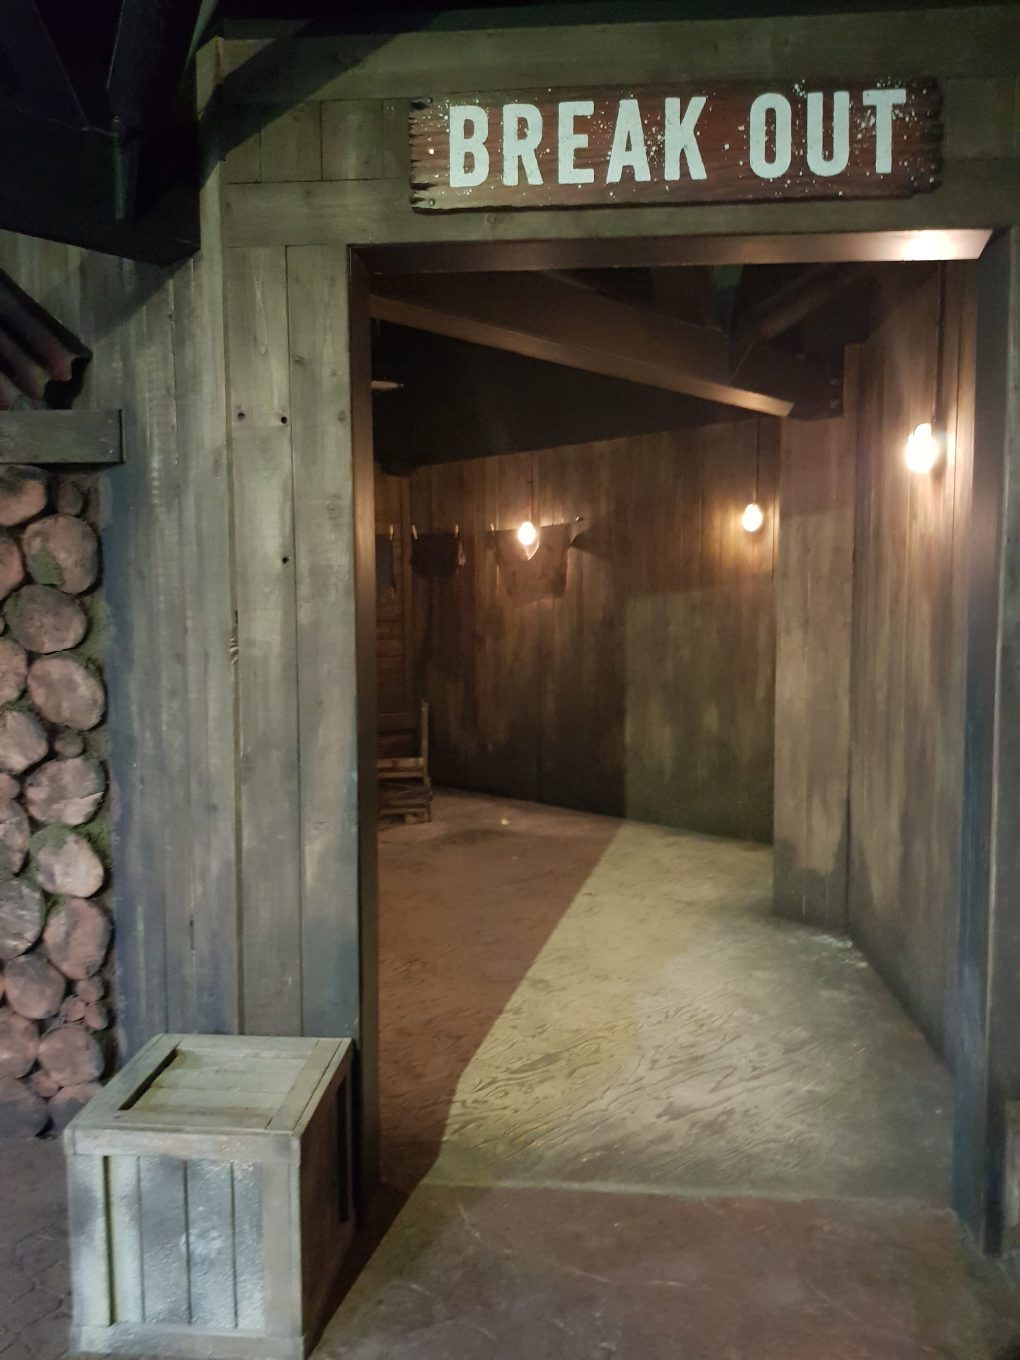 Entrance to the Break out escape room at the Bear Grylls Adventure. A Wooden door frame with BREAK OUT written above leading into a wooden corridor with a small wooden box outside